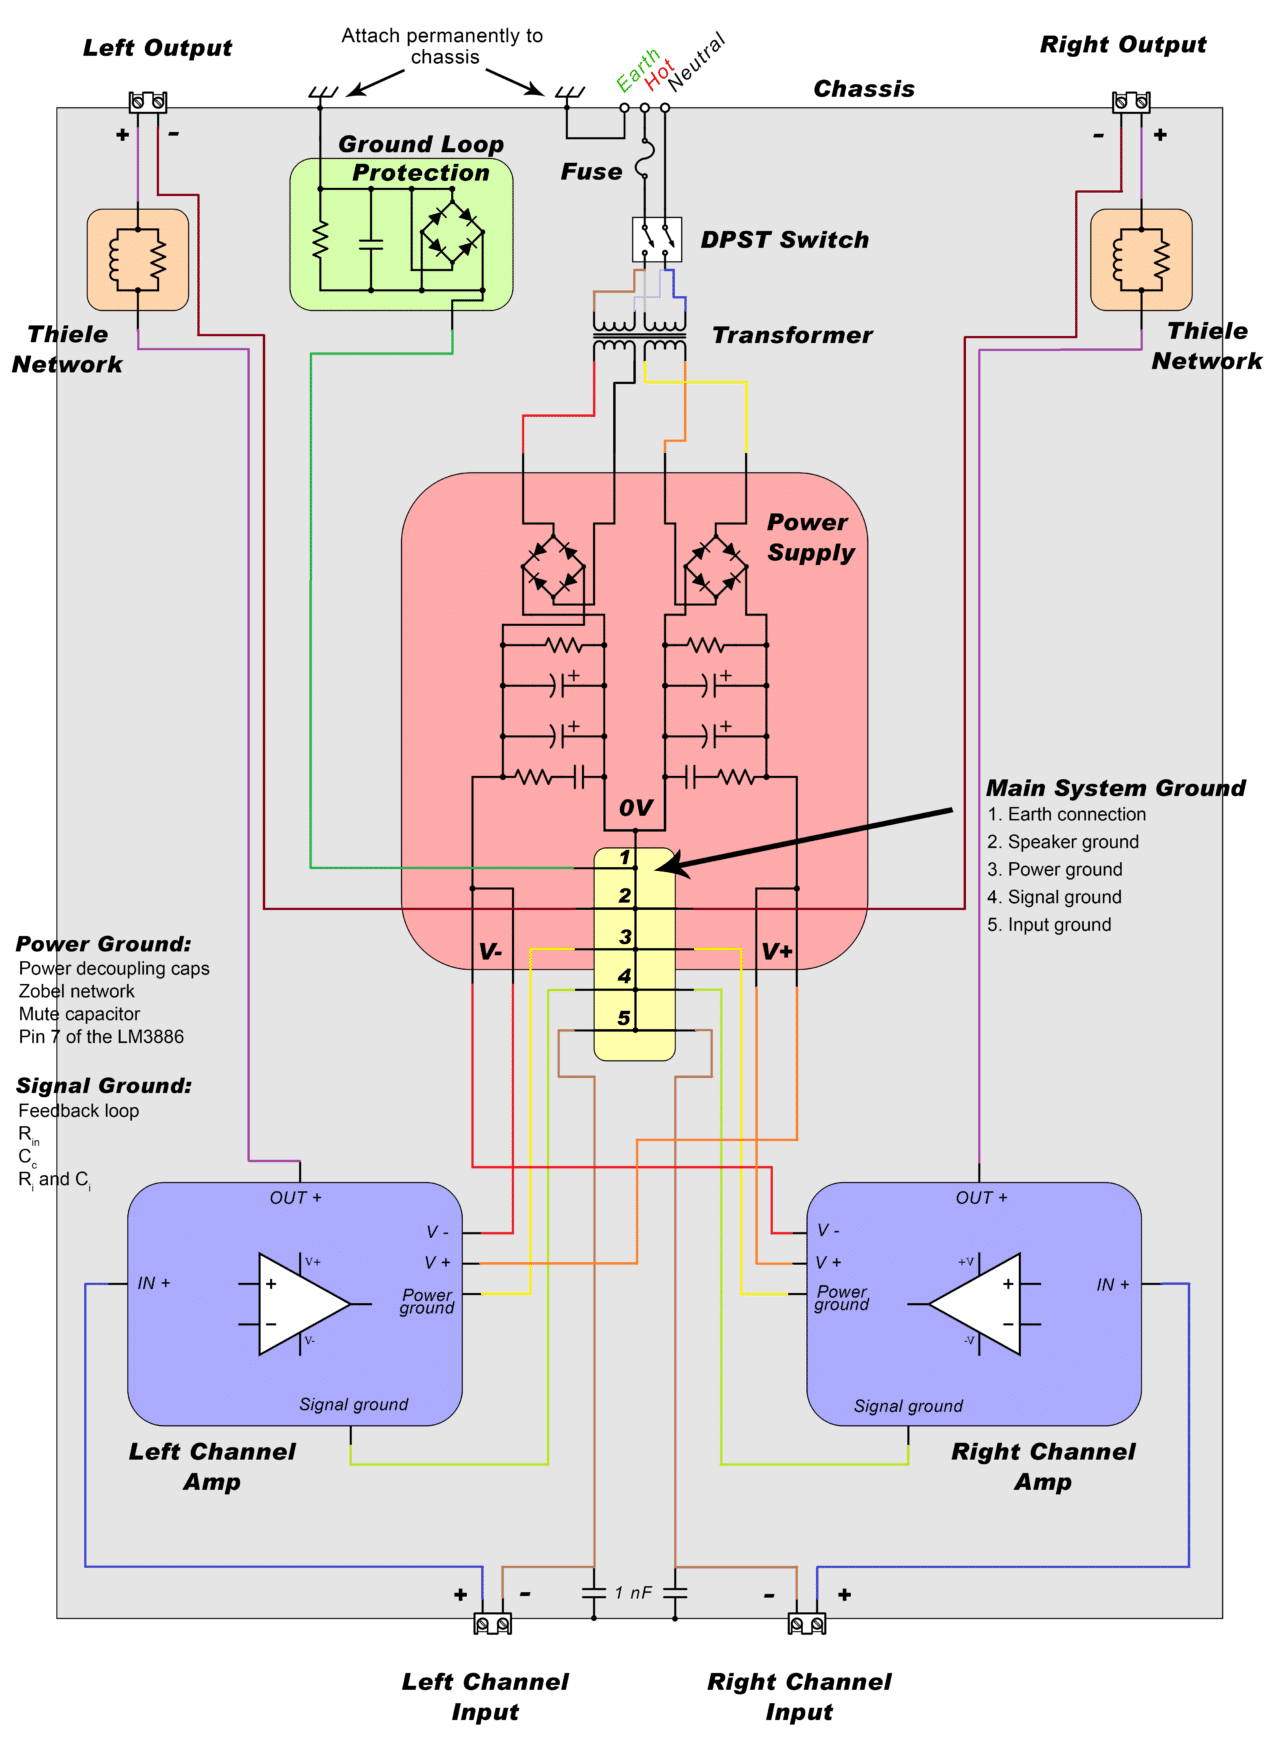 A Complete Guide To Design And Build Hi Fi Lm3886 Amplifier Common Electric Guitar Wiring Diagrams Amplified Parts The Layout Is Just As Important Pcb Grounding Use Diagram Below For Various Together